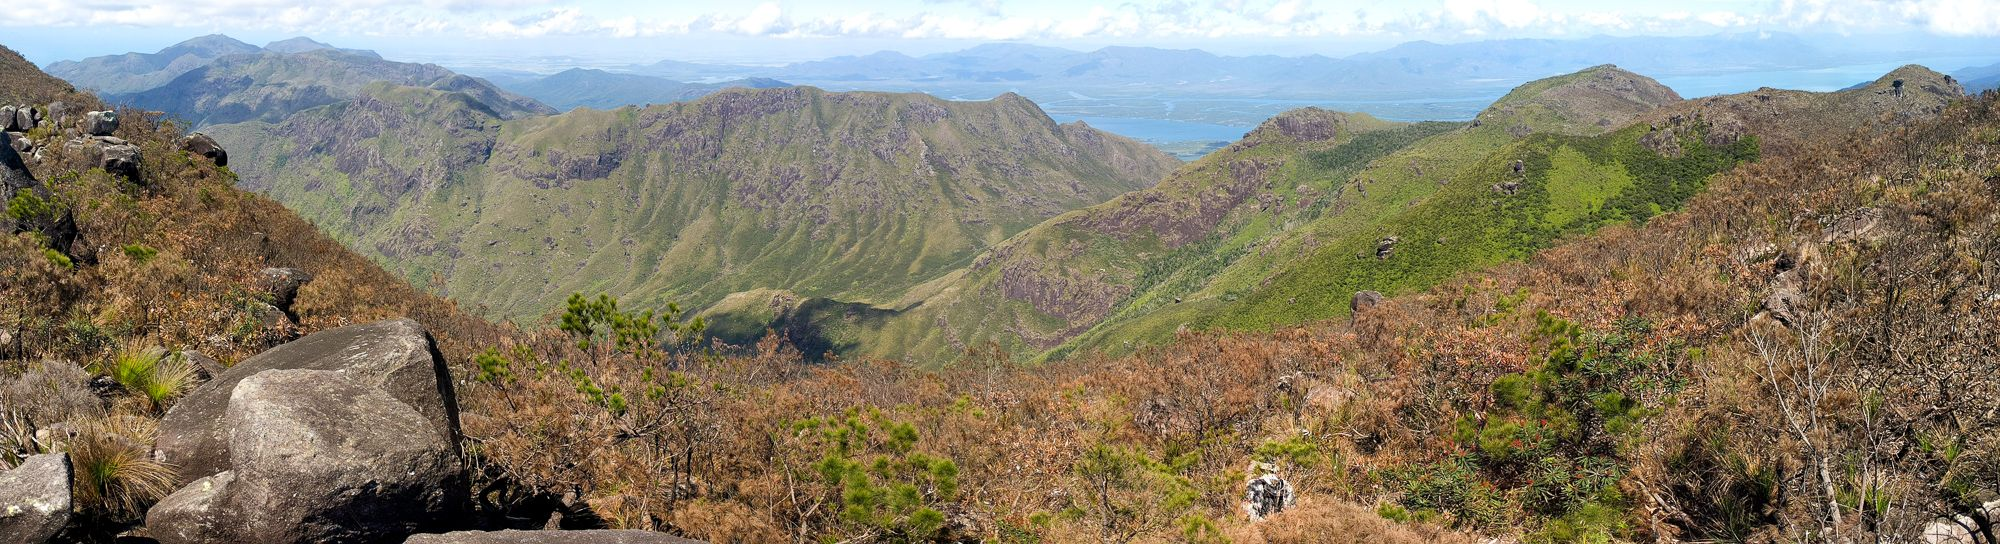 Views out to the South West from Mt Bowen, Hinchinbrook Island